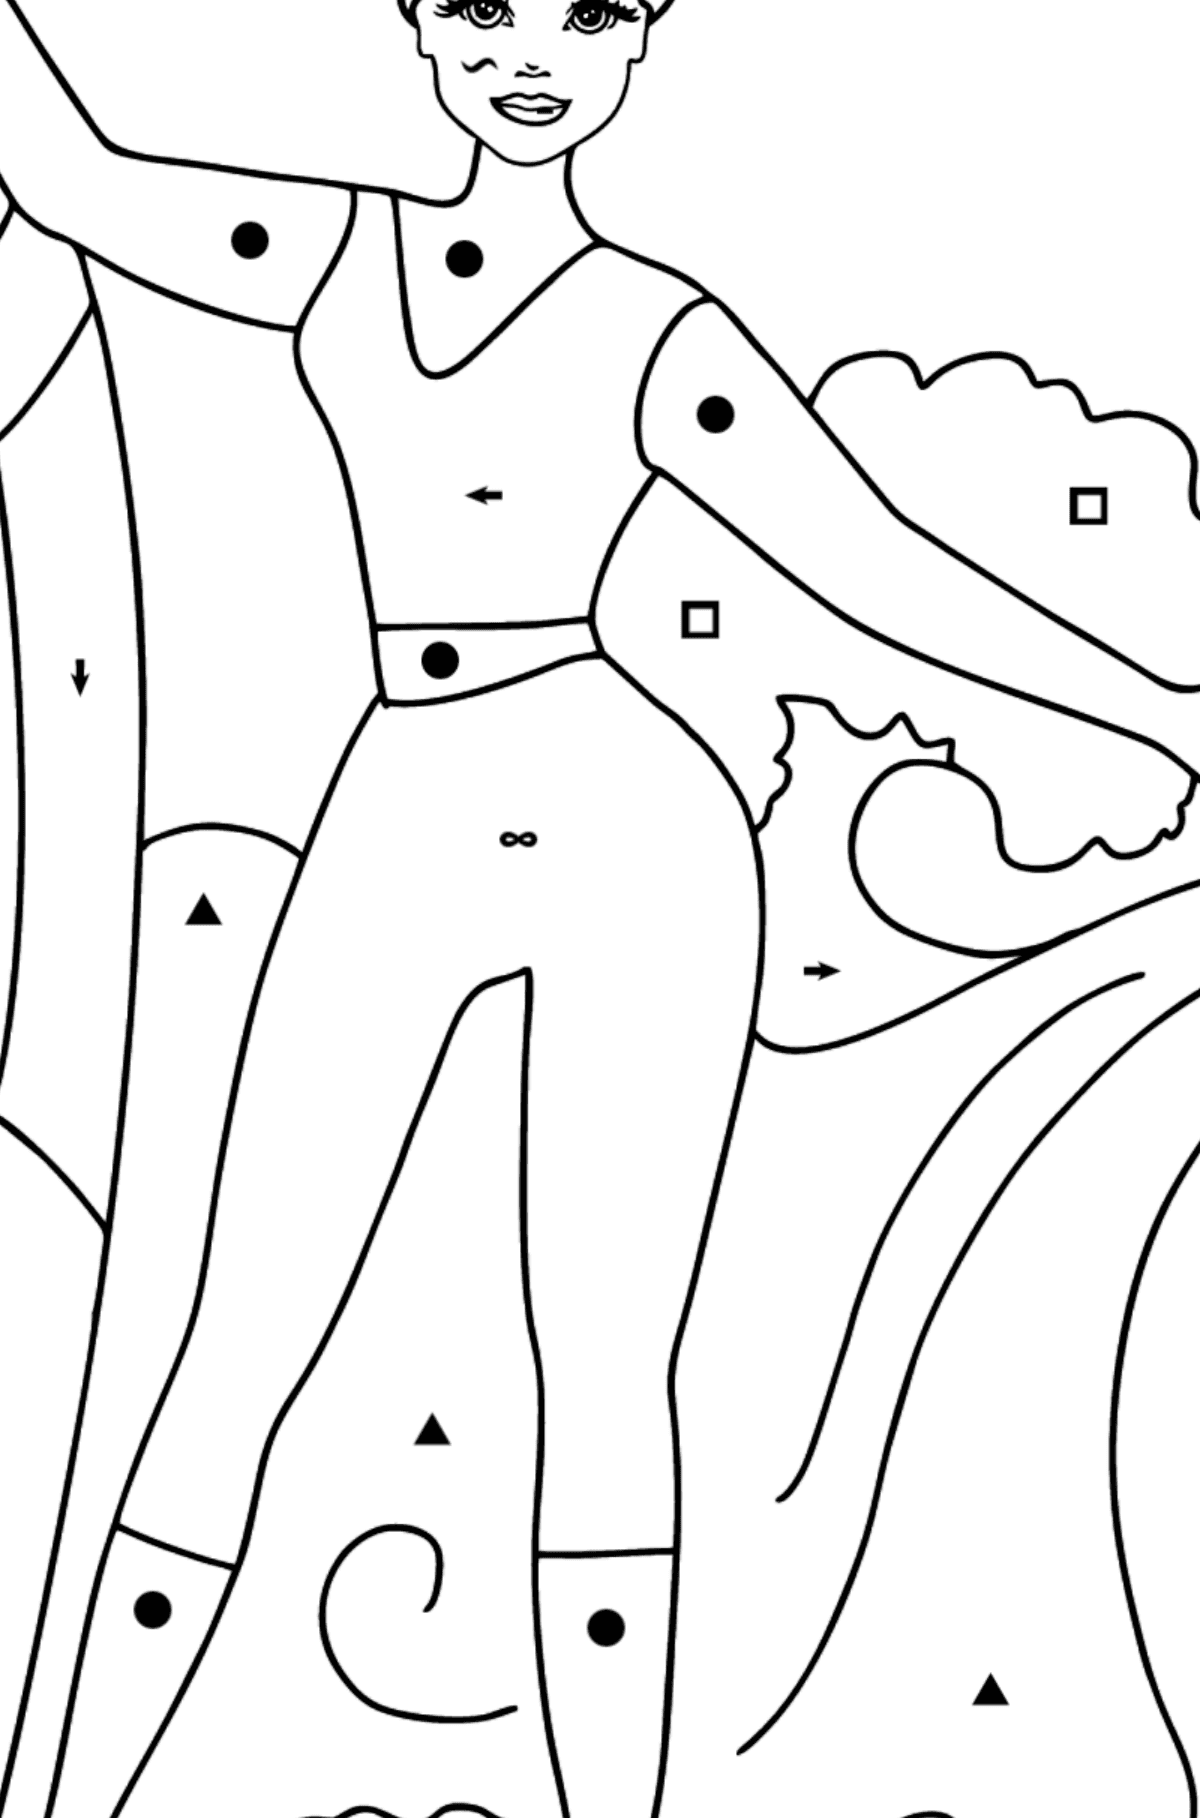 Barbie Surfer Doll coloring page - Coloring by Symbols for Kids